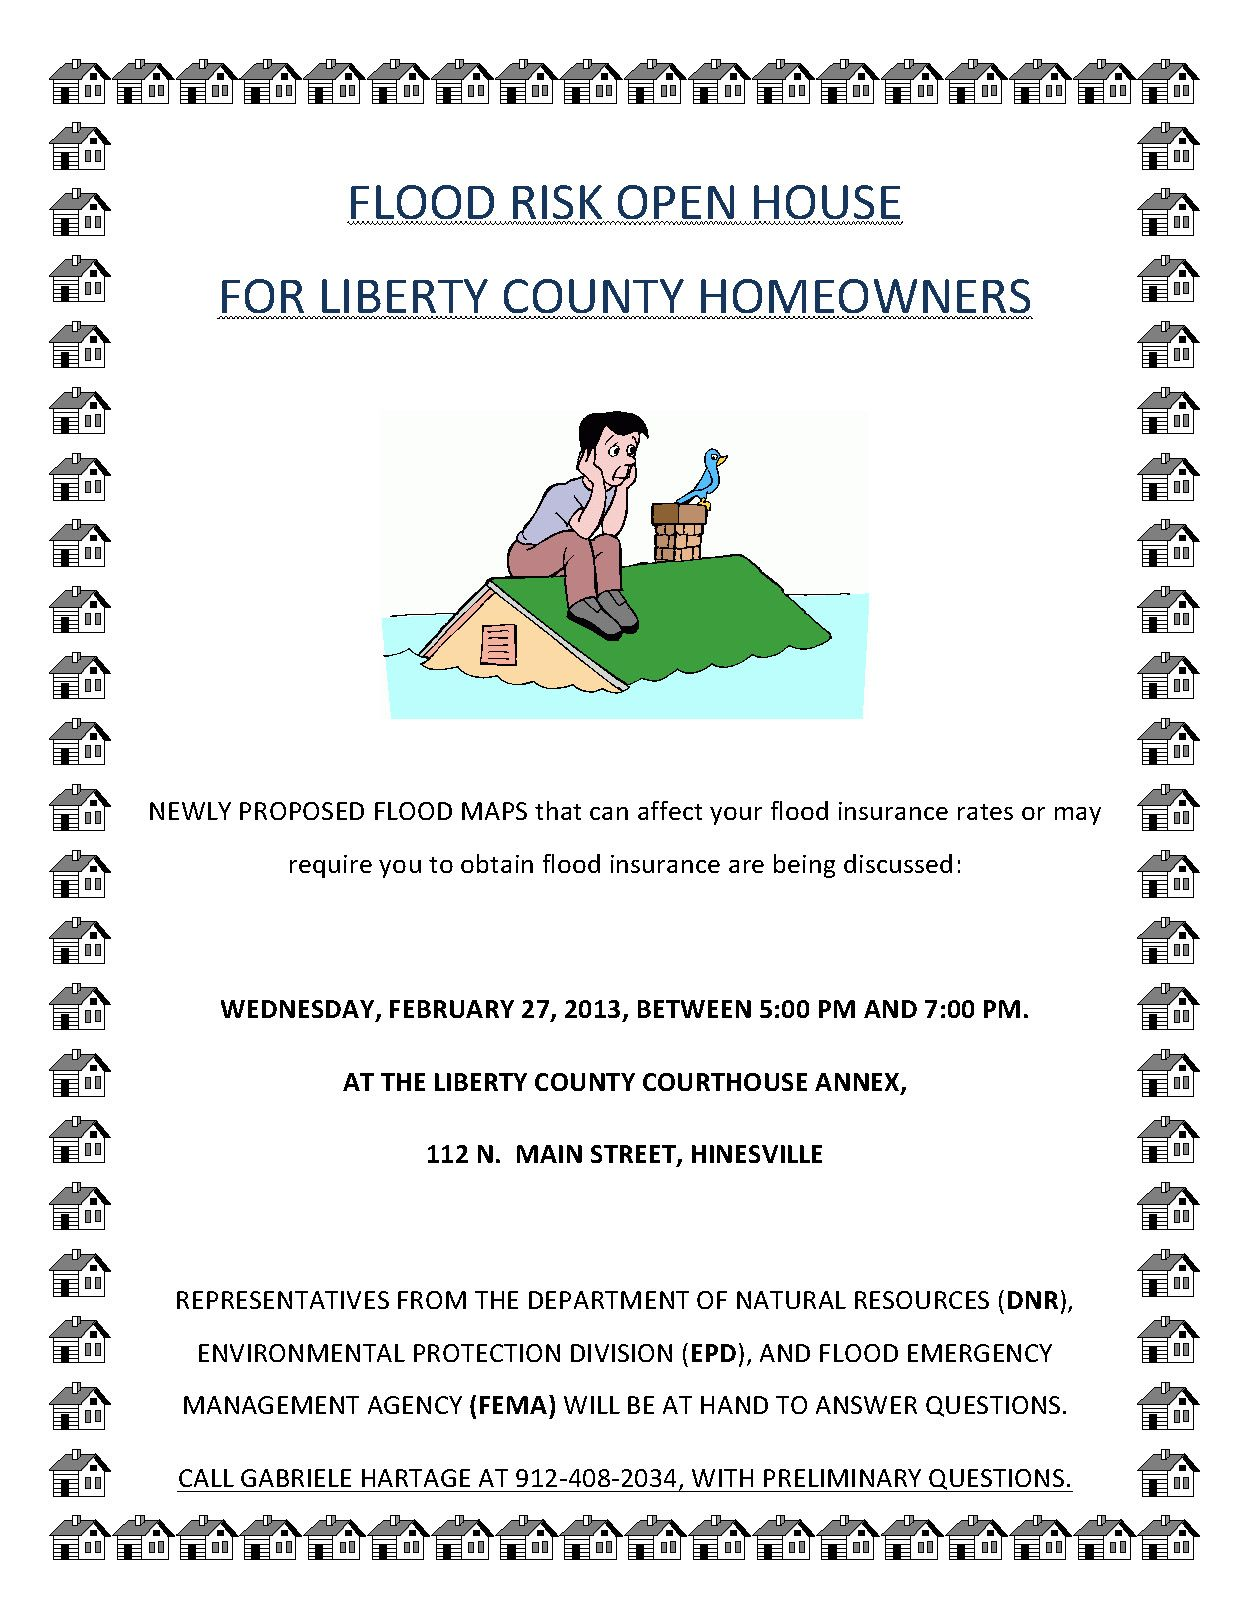 Flood risk information open house for liberty county